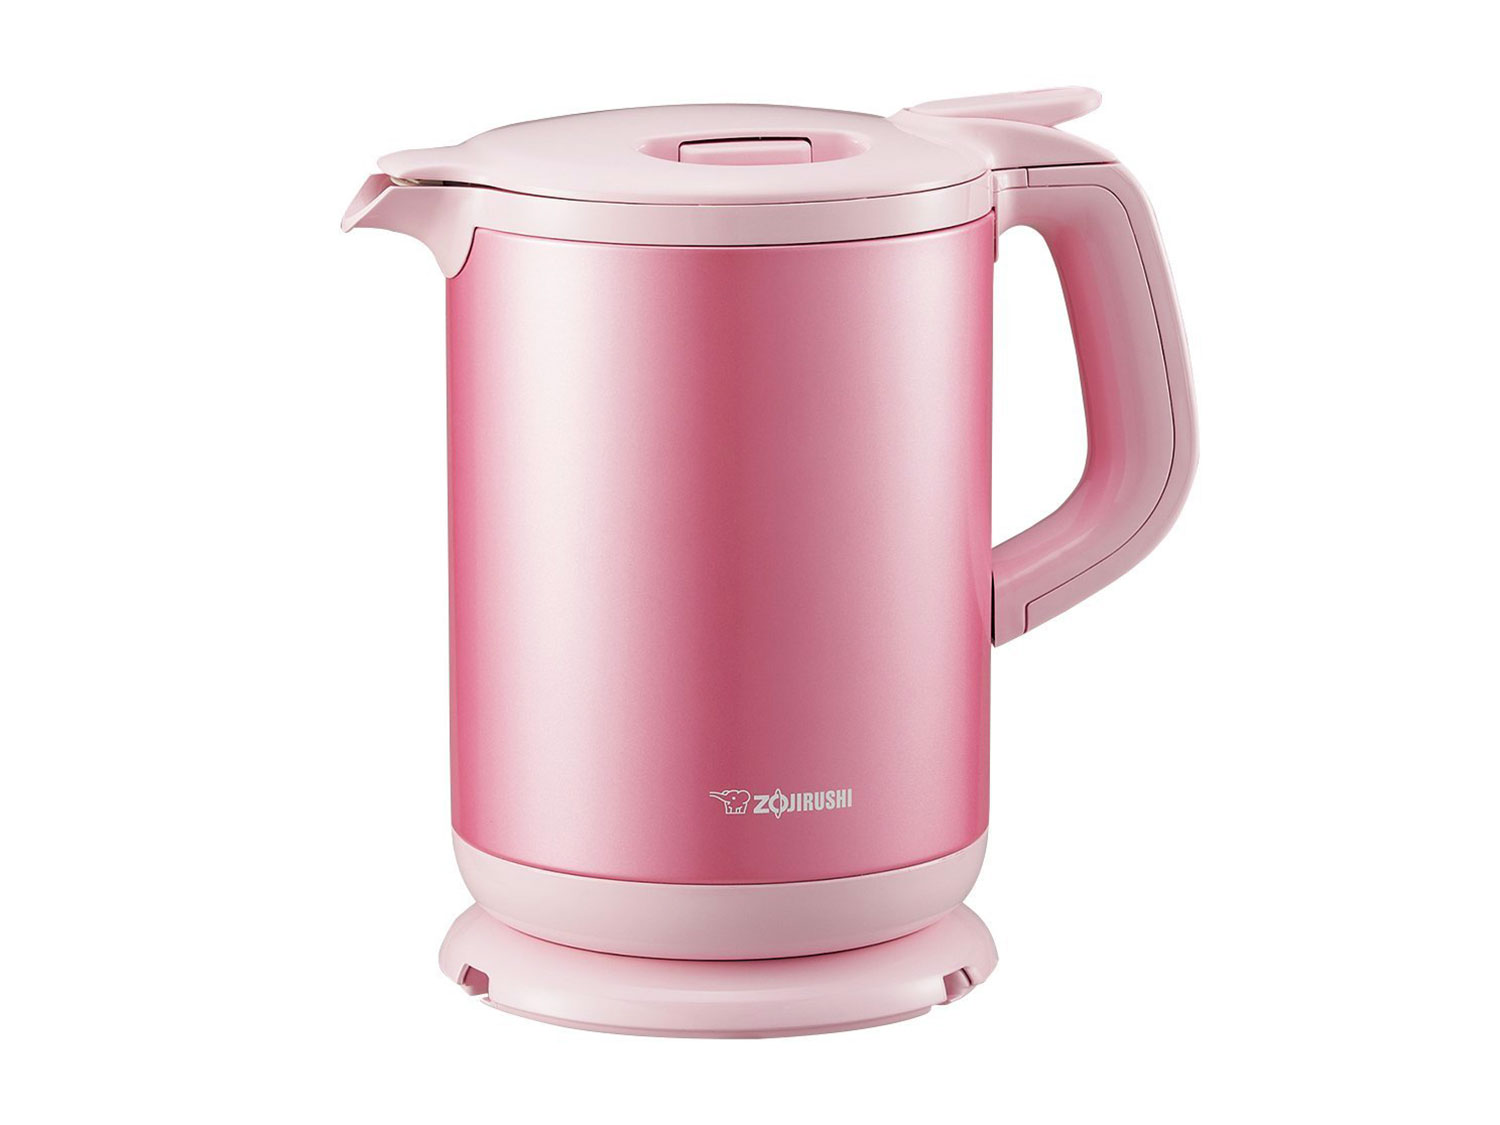 shiny pink kettle